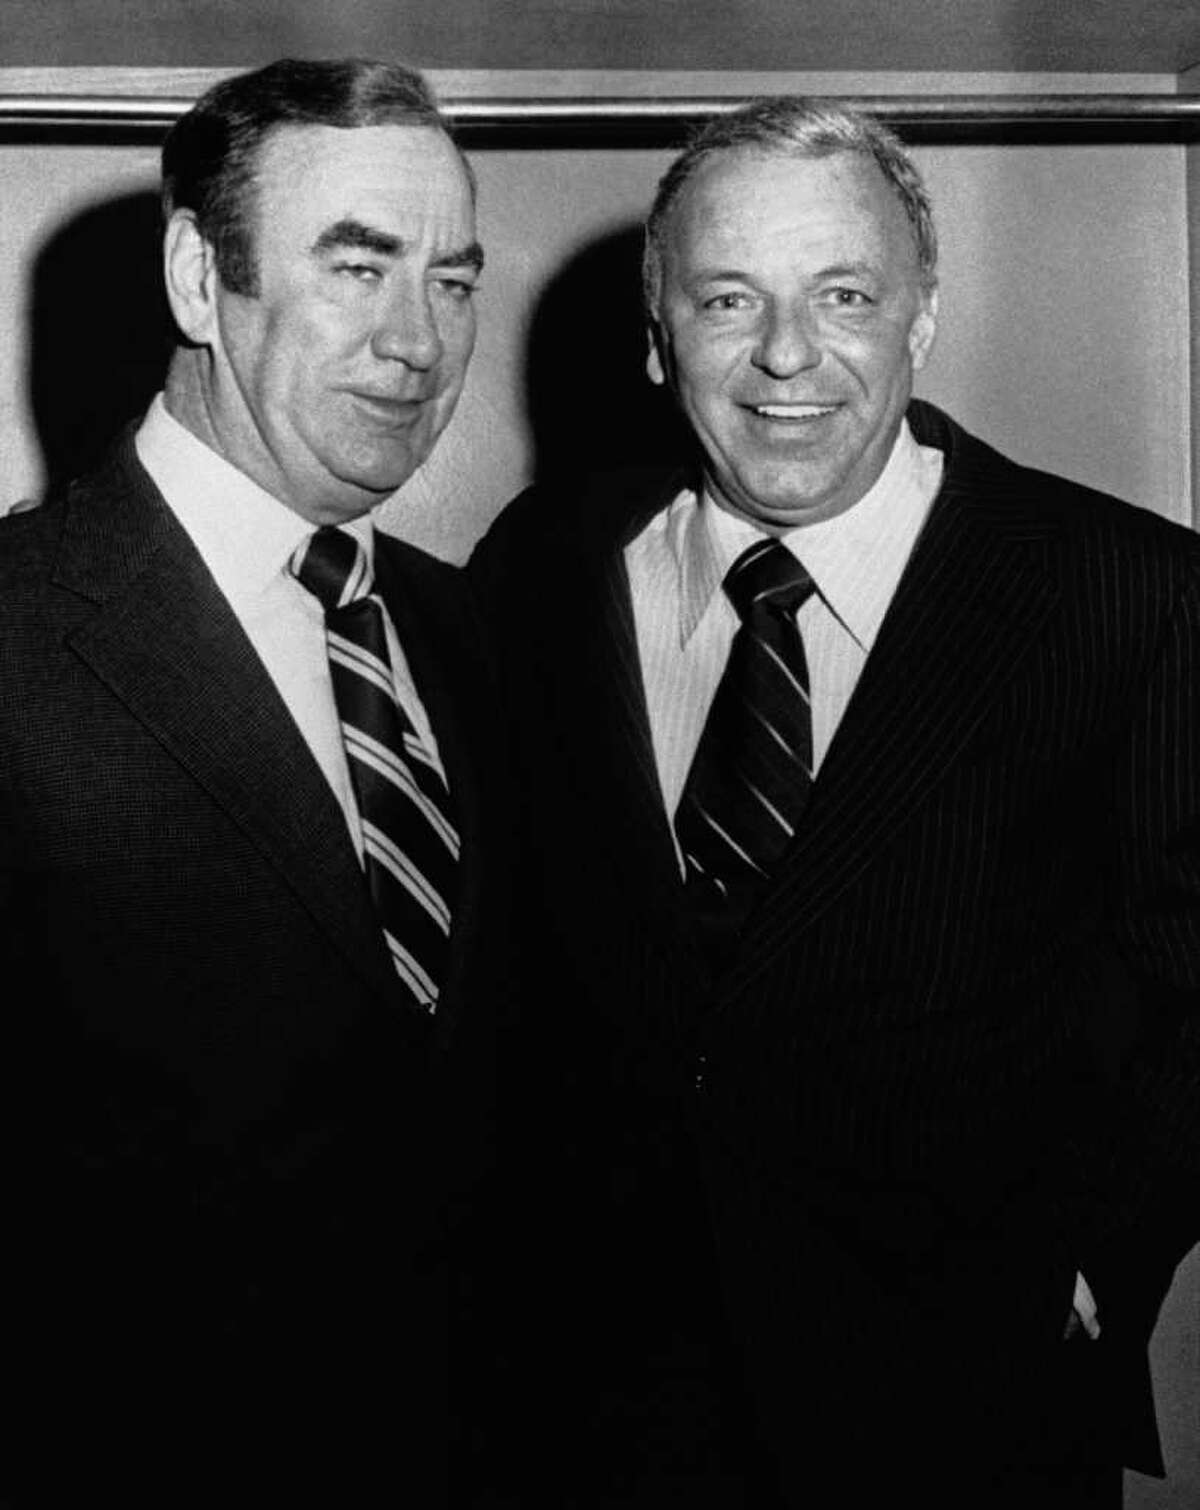 FILE - In this September 1975 file photo, New York Gov. Hugh Carey, left, visits singer Frank Sinatra backstage at the Uris Theater in New York, after Sinatra's performance. Carey, who led the rescue effort that brought New York City back from the brink of bankruptcy during its 1975 fiscal crisis, died Sunday, Aug. 7, 2011. He was 92.